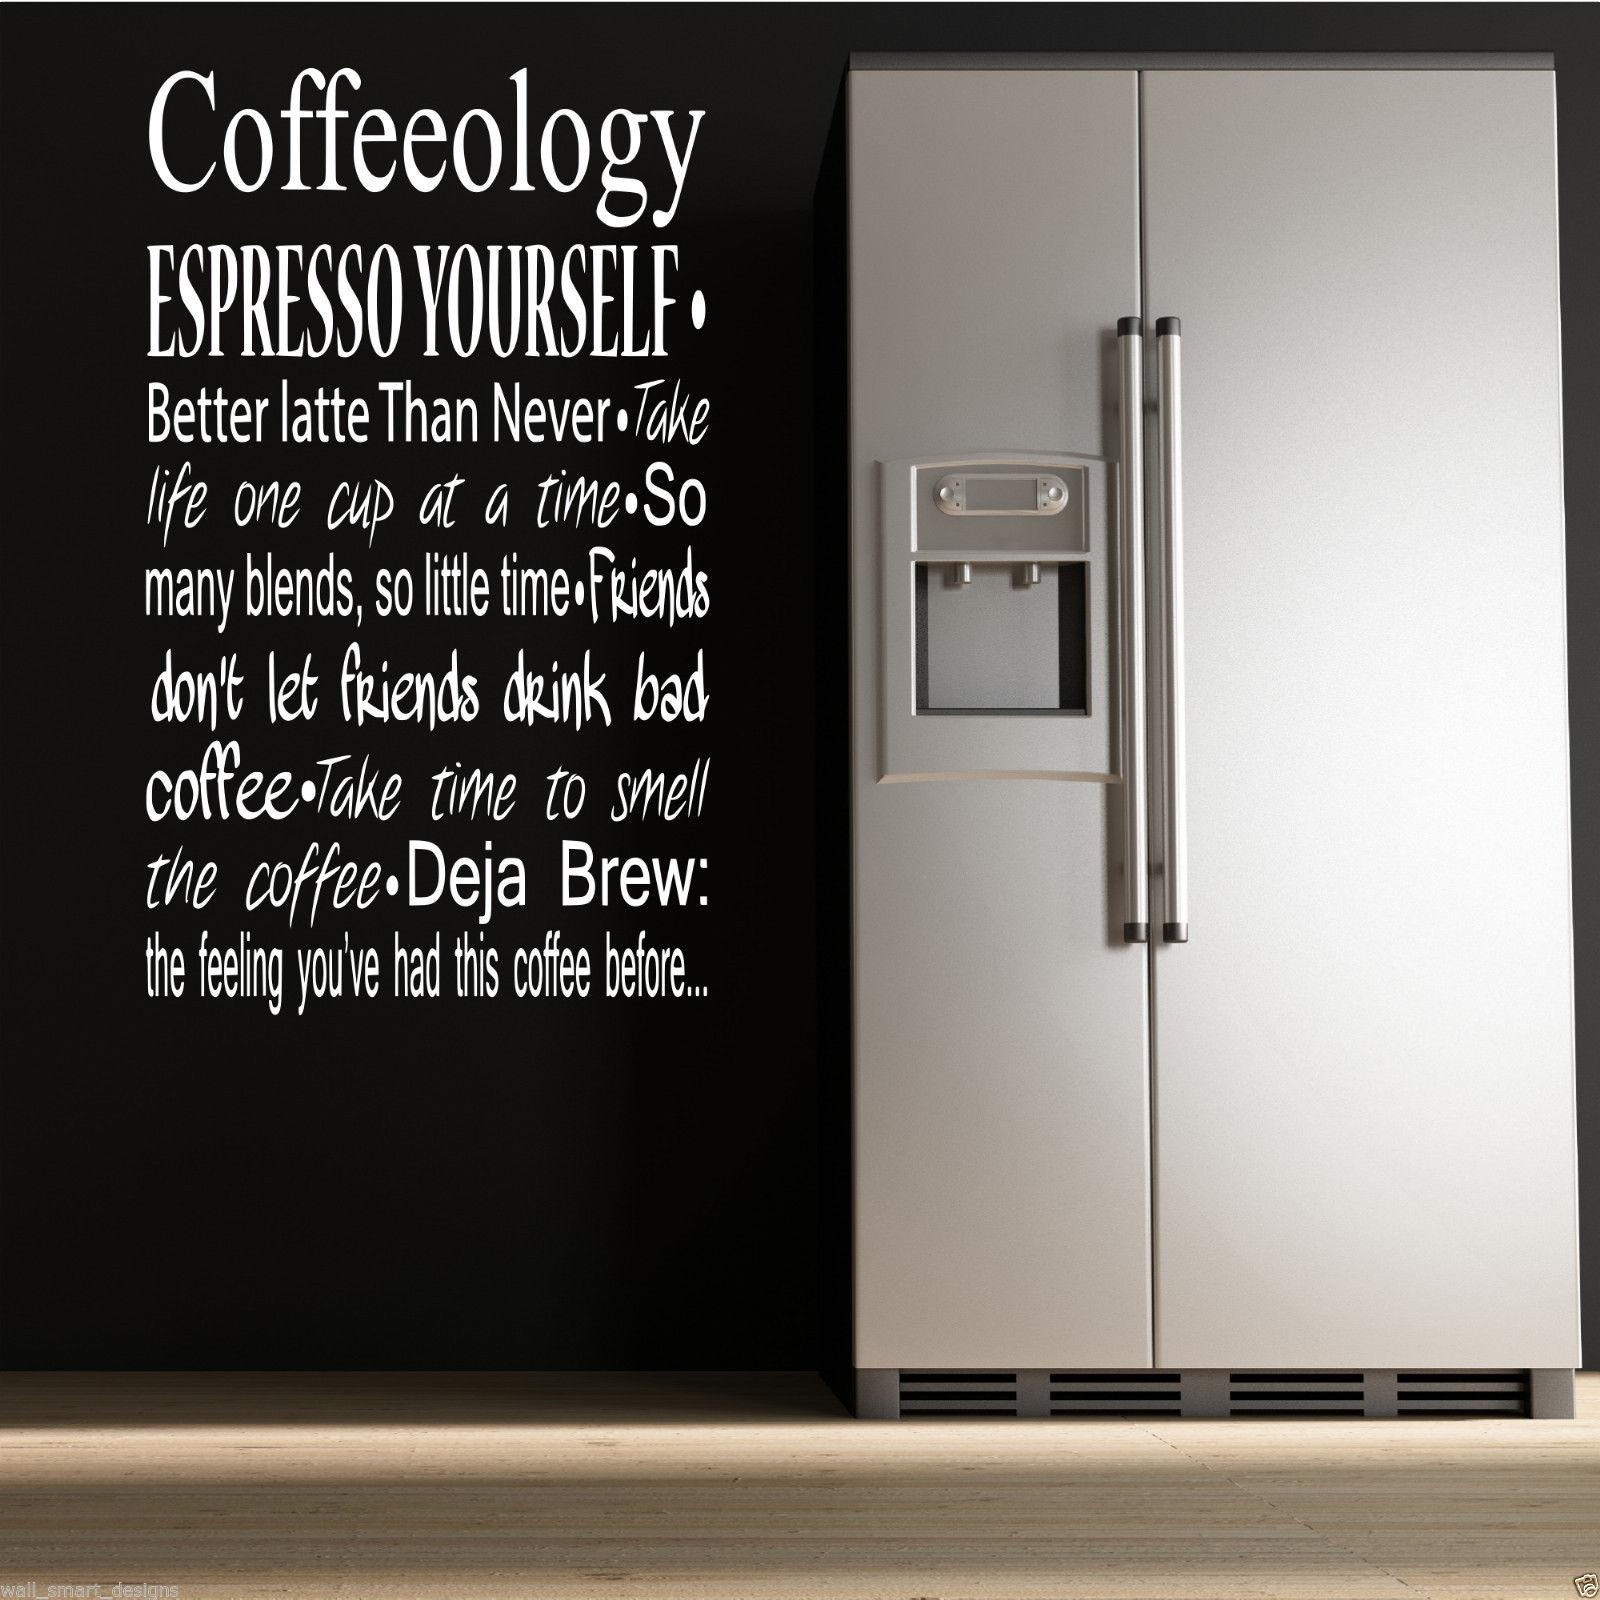 Coffee Latte Art Quotes 20 Best Collection Of Cafe Latte Kitchen Wall Art Wall